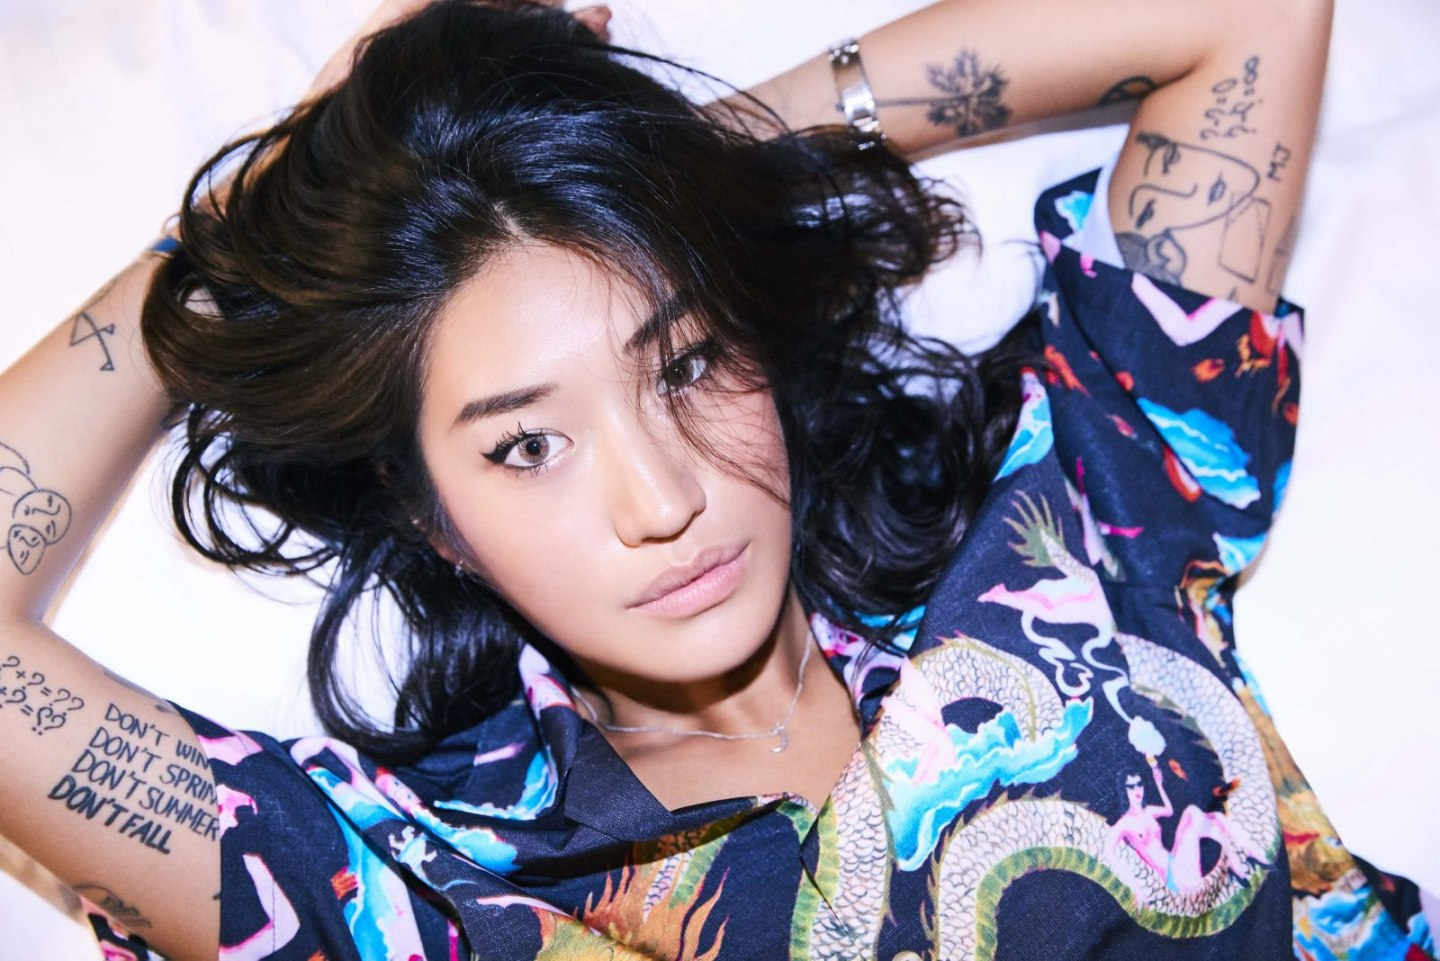 Musician Peggy Gou laying down with hands behind her head.